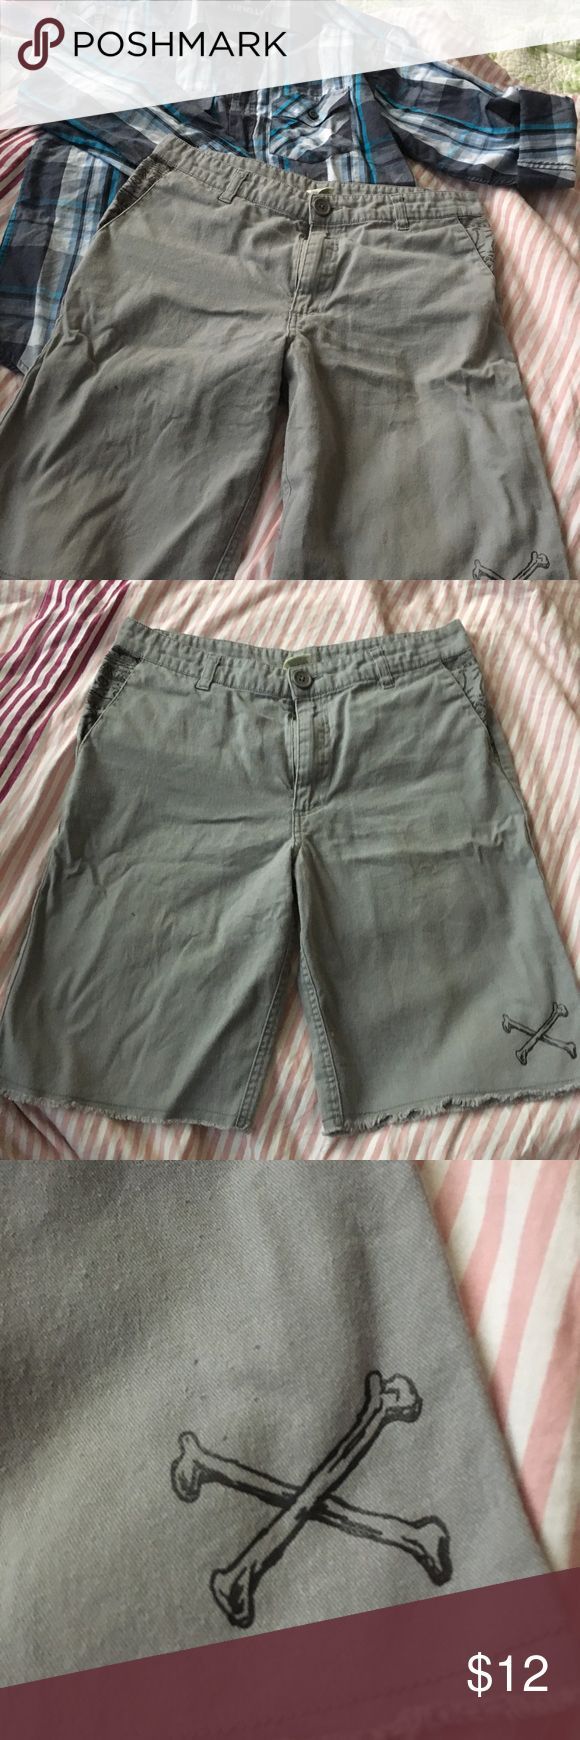 Boys skater style khaki shorts Faded Glort skater style boys shorts. Only worn a couple times. In great condition. Has one little spot on the leg but came like that. I think it was from the printing process when putting the crossbones on. Faded Glory Bottoms Shorts